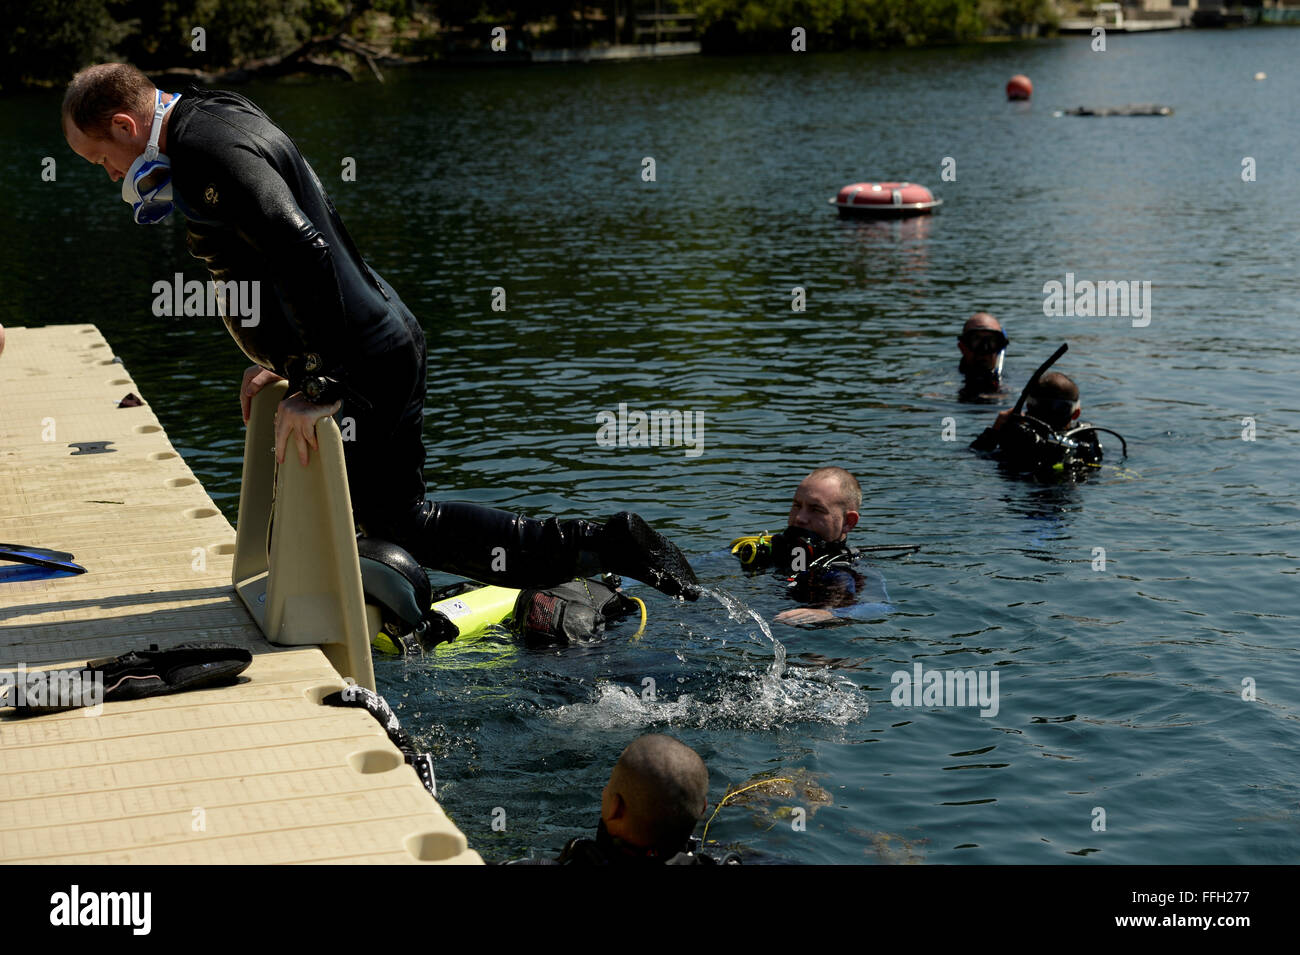 Keith Morlan climbs onto the dock while participating in a scuba diving class at Spring Lake in San Marcos, Texas. - Stock Image